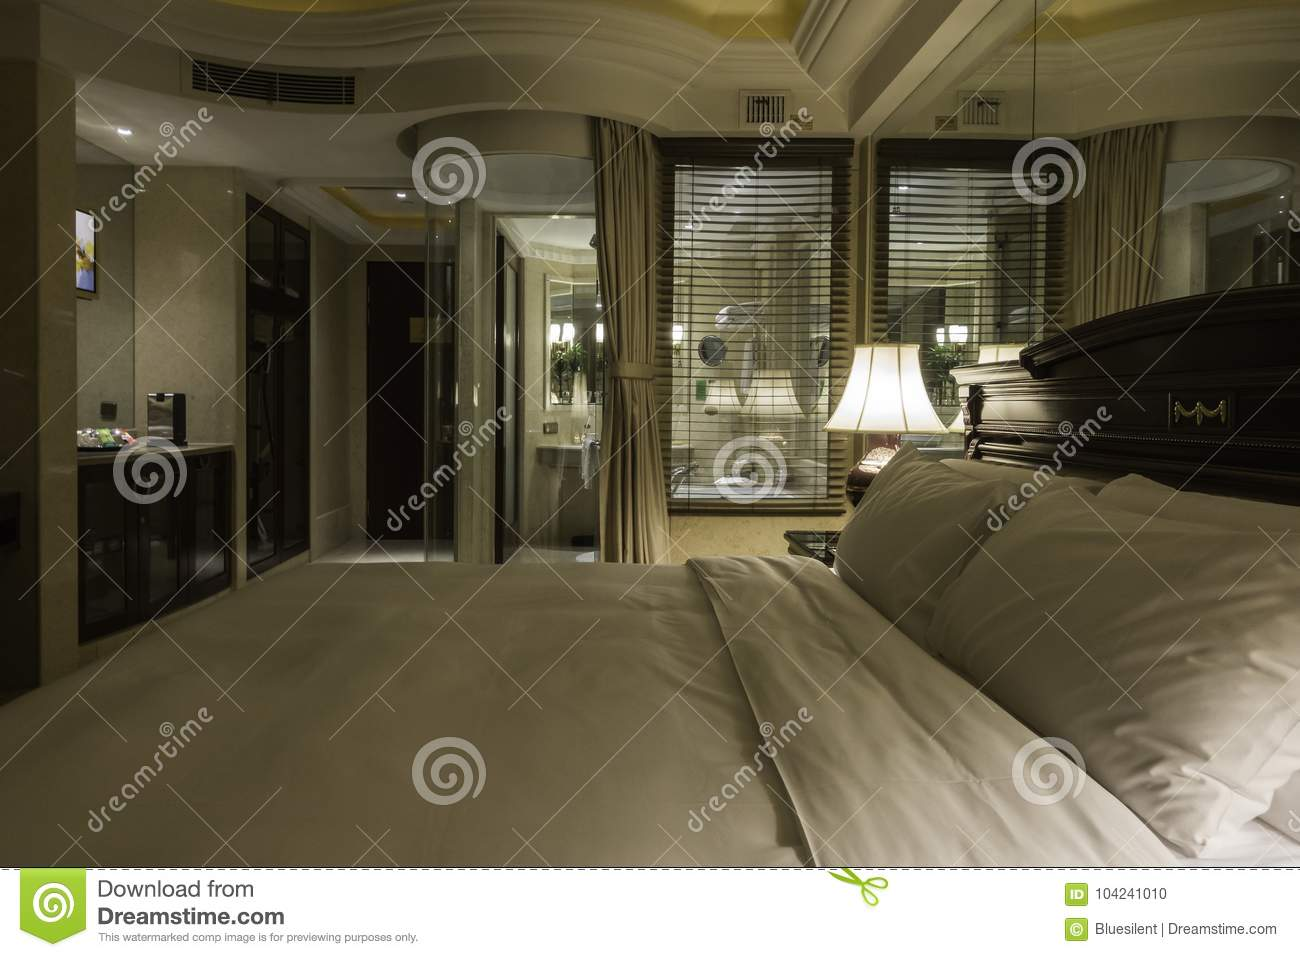 Reflection Of Interior Of A Hotel Room Stock Photo Image